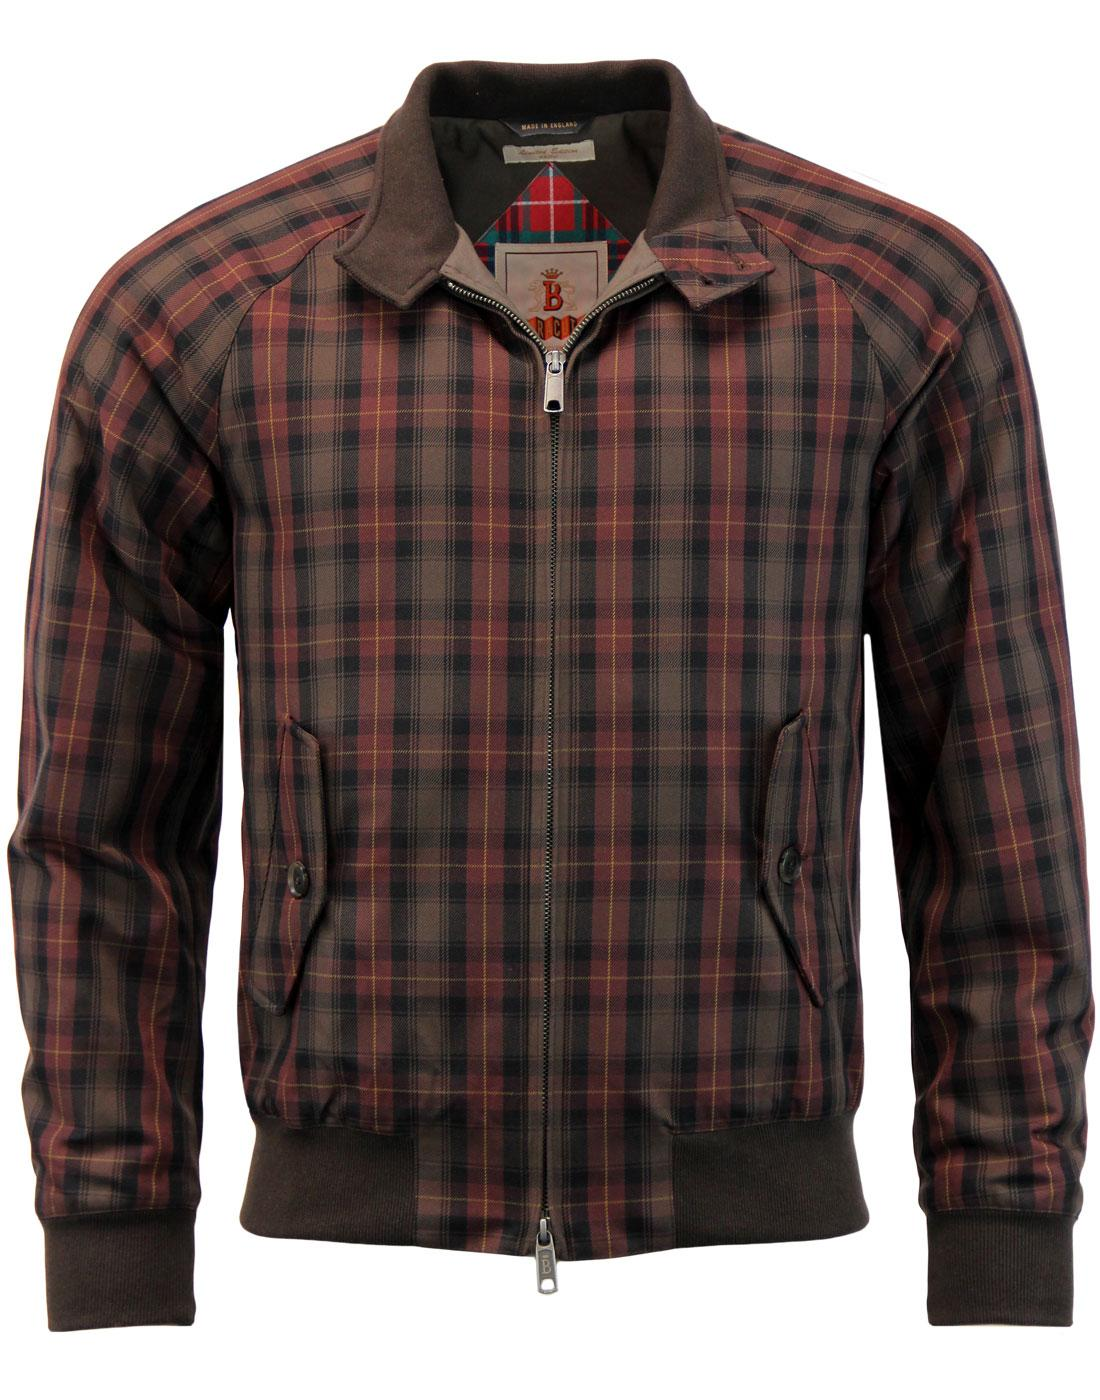 BARACUTA G9 Winter Mod Japanese Check Harrington